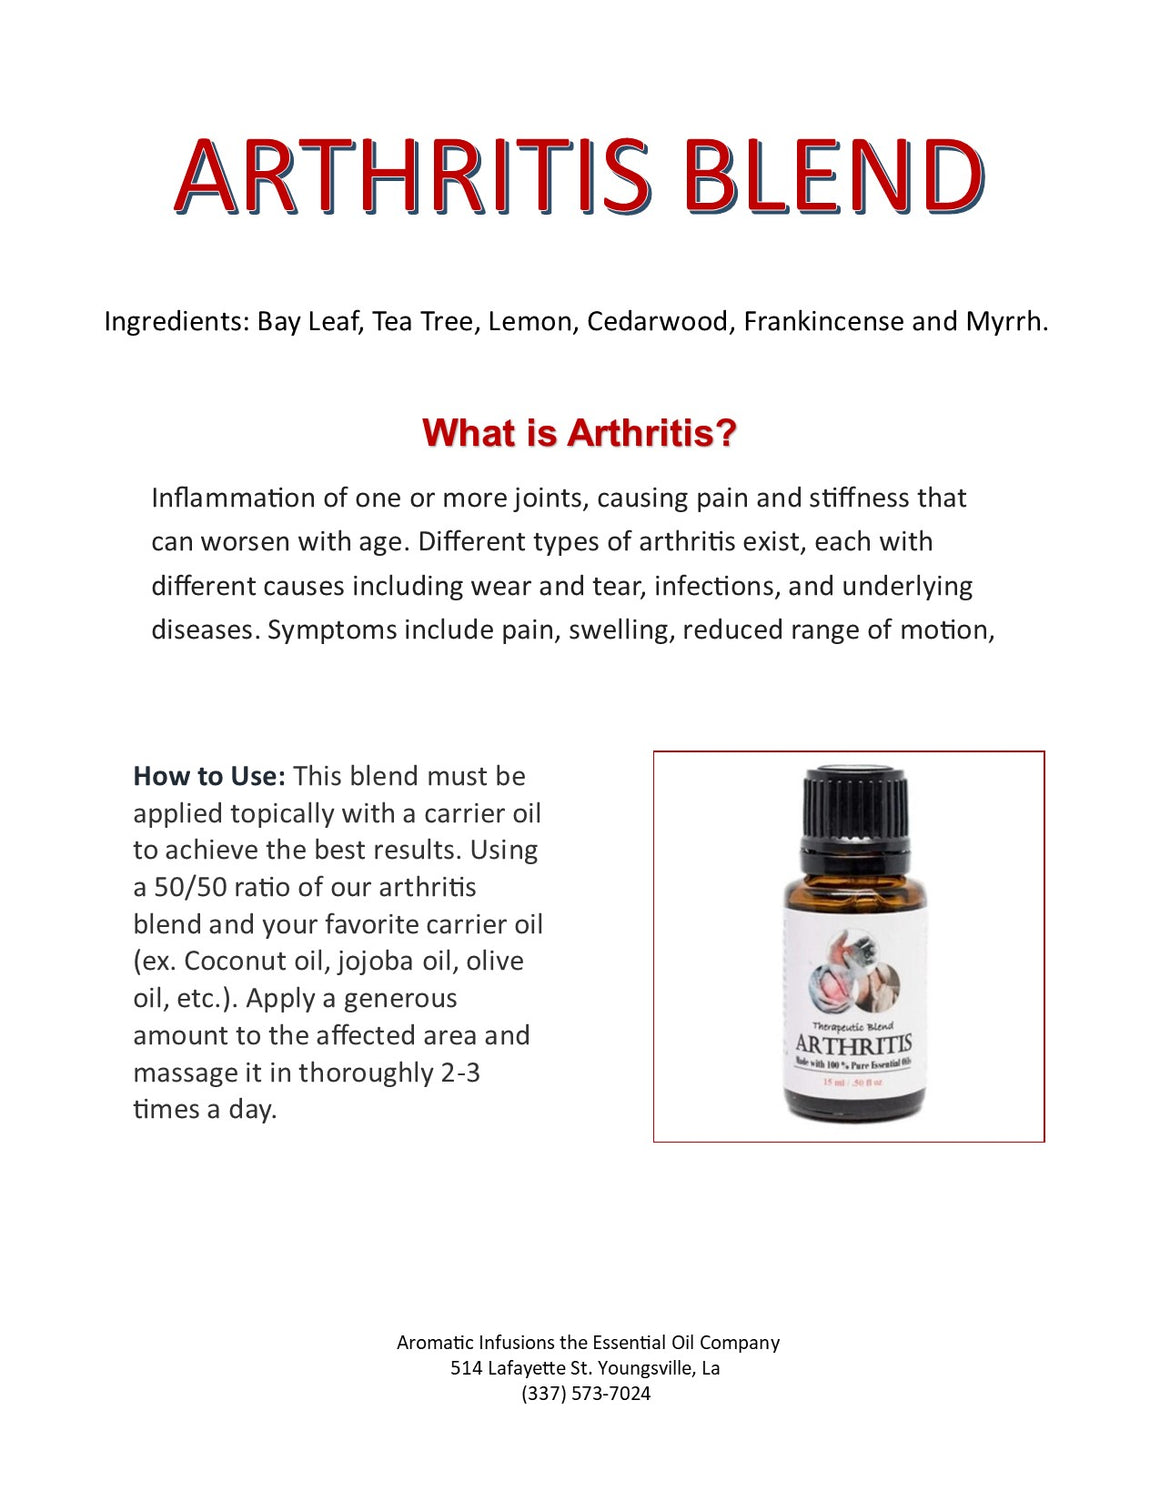 Arthritis Blend 15ml - Aromatic Infusions